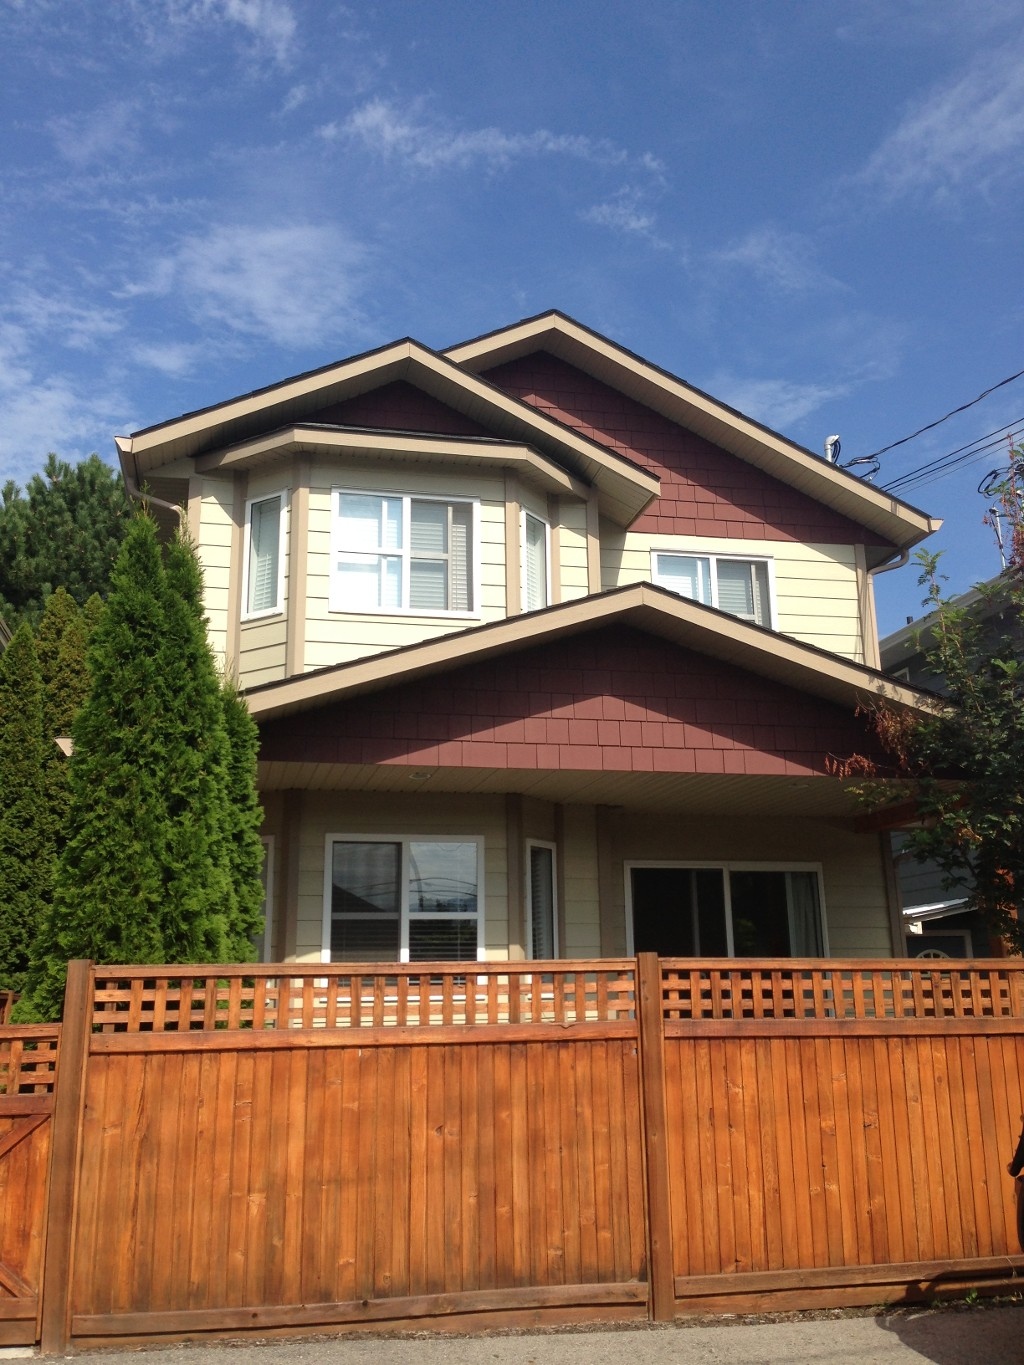 Main Photo: #102 - 512 Westminster Avenue in Penticton: Main North Residential Attached for sale : MLS(r) # 145361